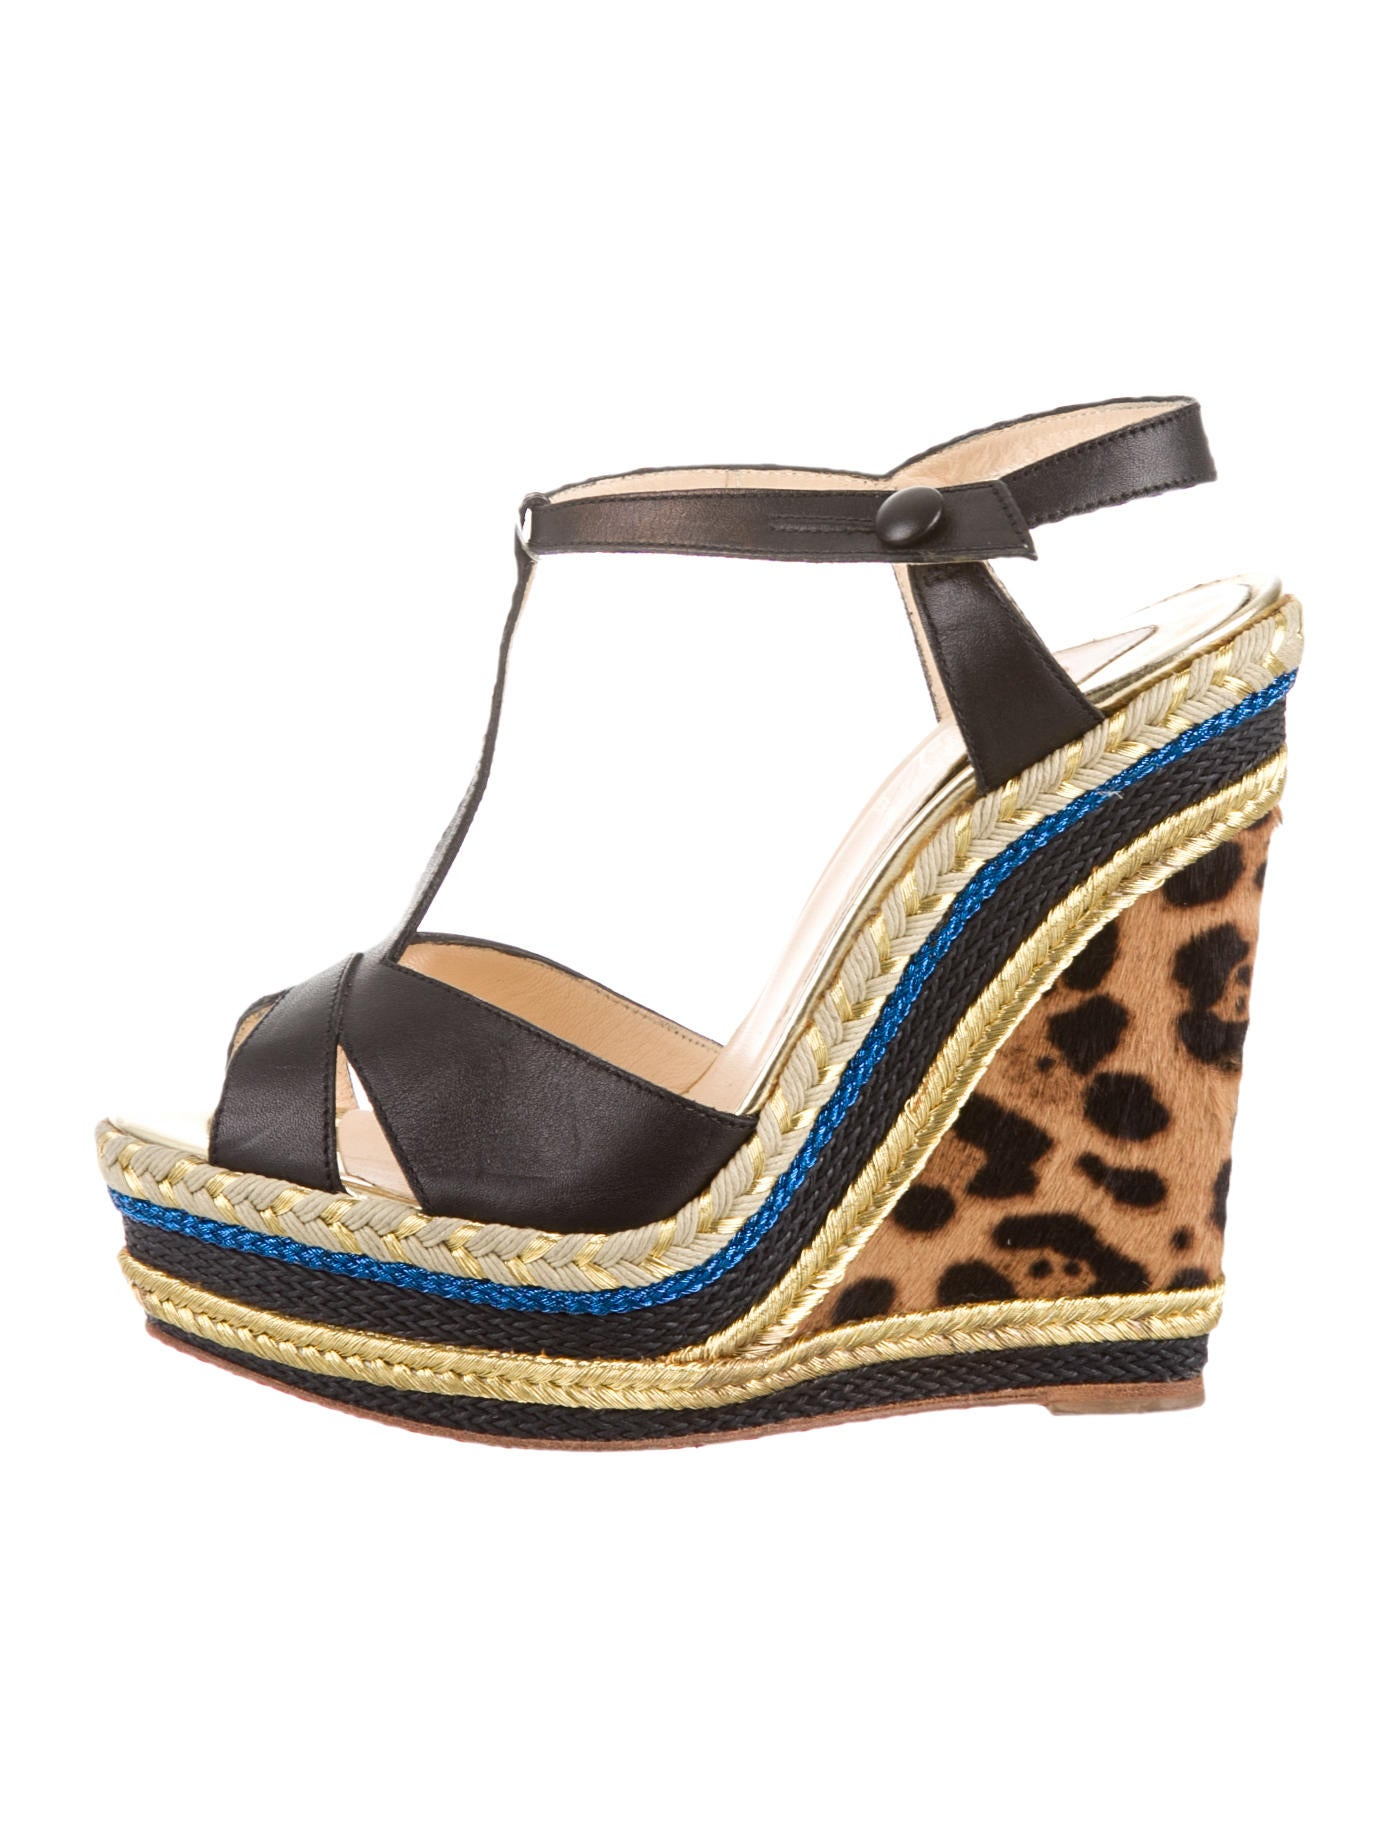 christian louboutin wedge sandals Metallic leather woven detail ...